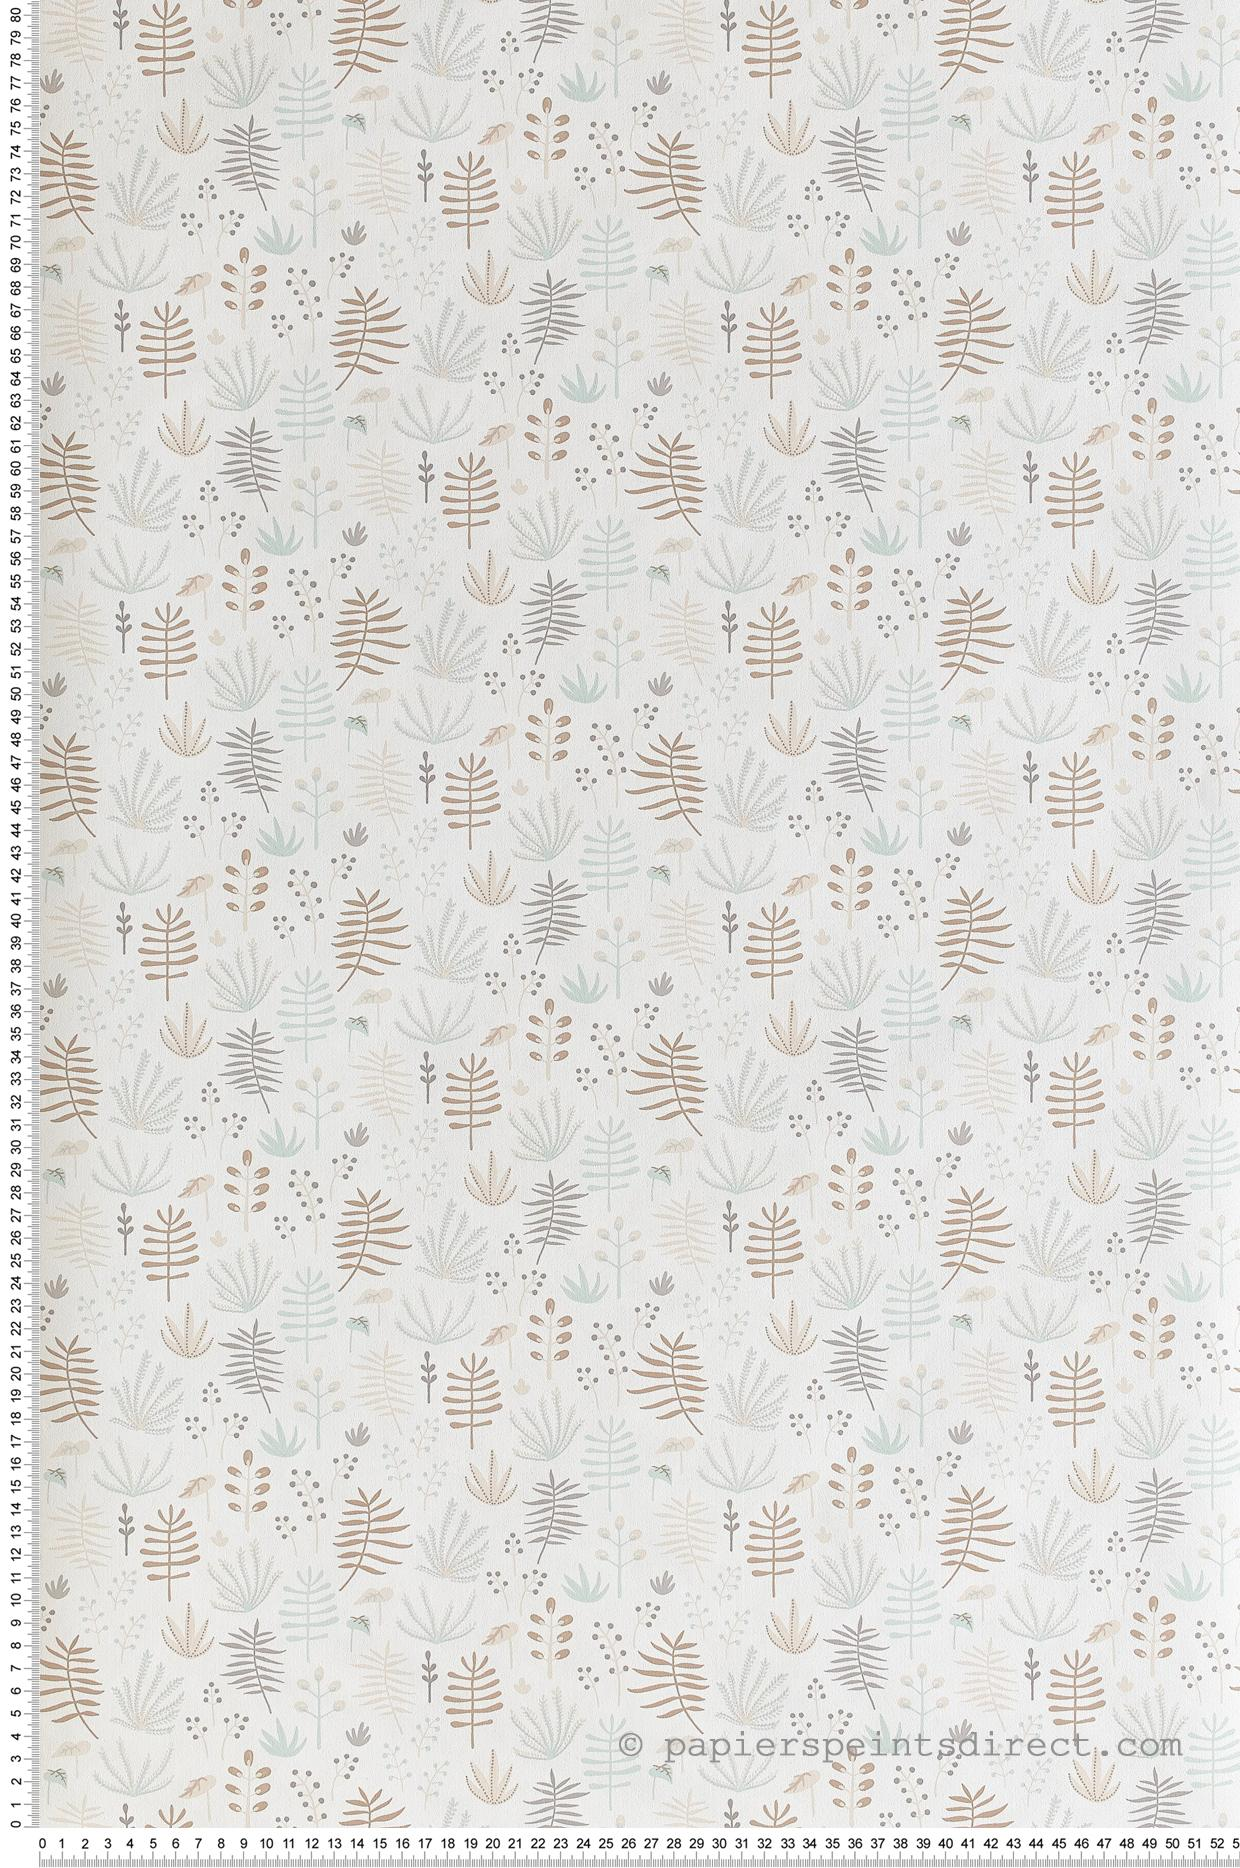 Papier peint enfant Jungle All over bleu beige - Happy Dreams de Casadéco | Réf. HPDM82731209